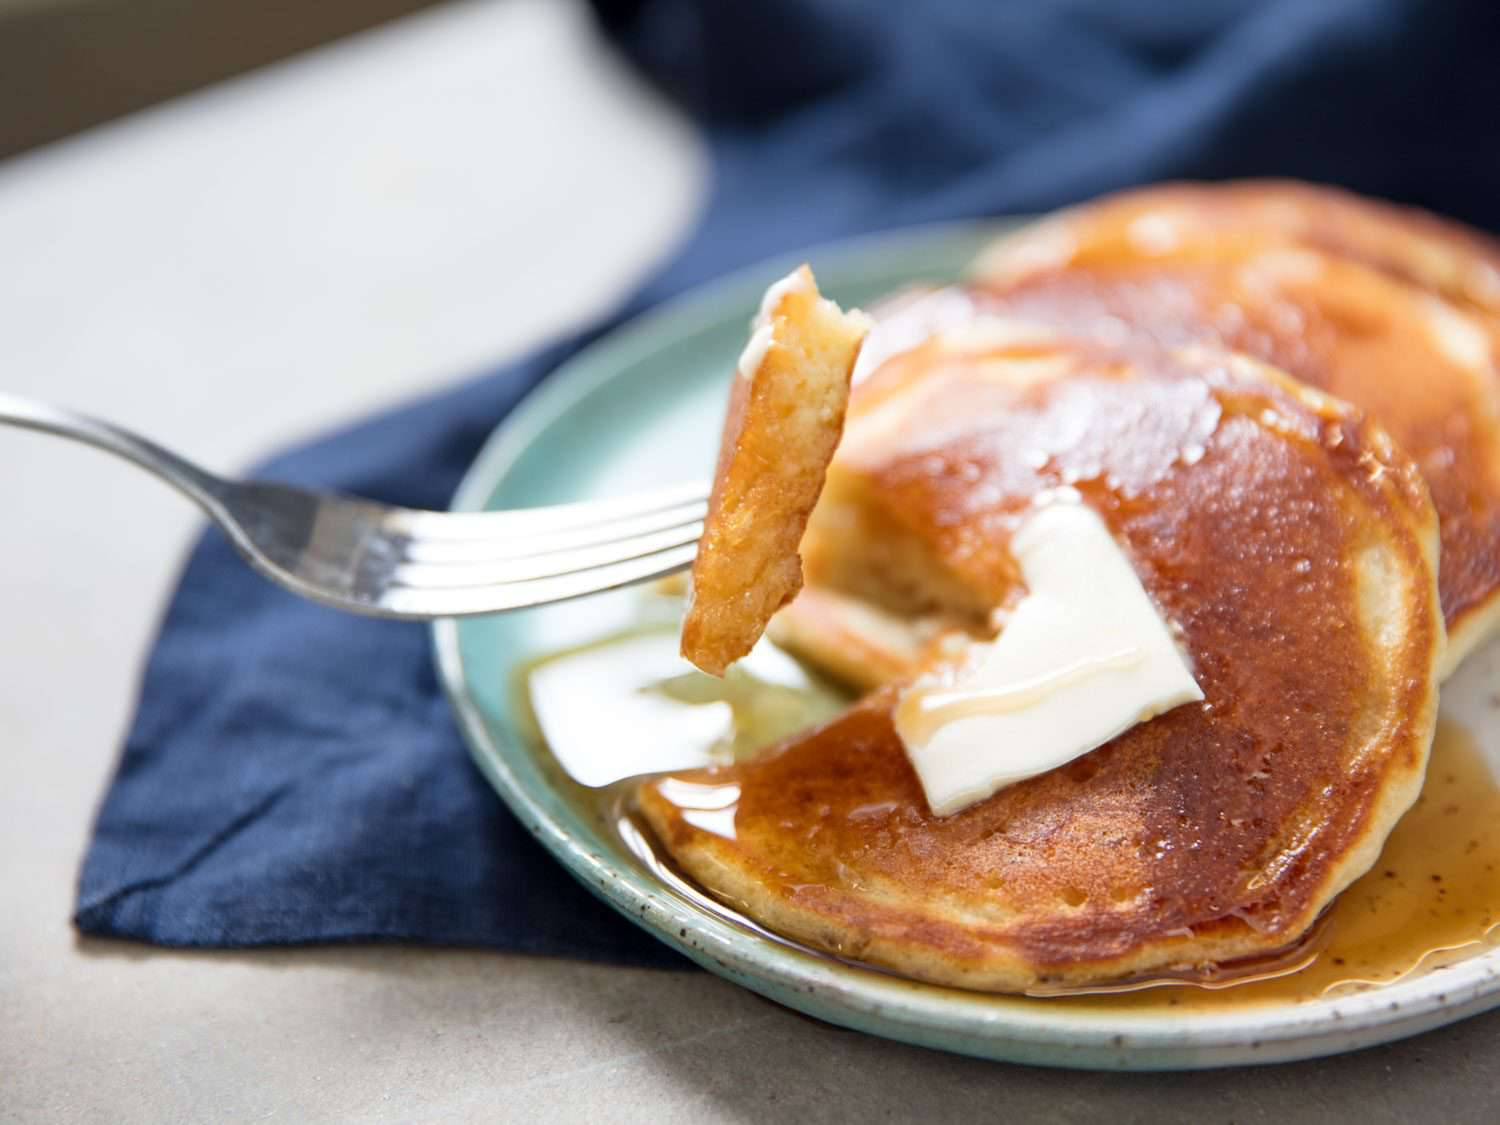 thin pancakes, drenched in syrup